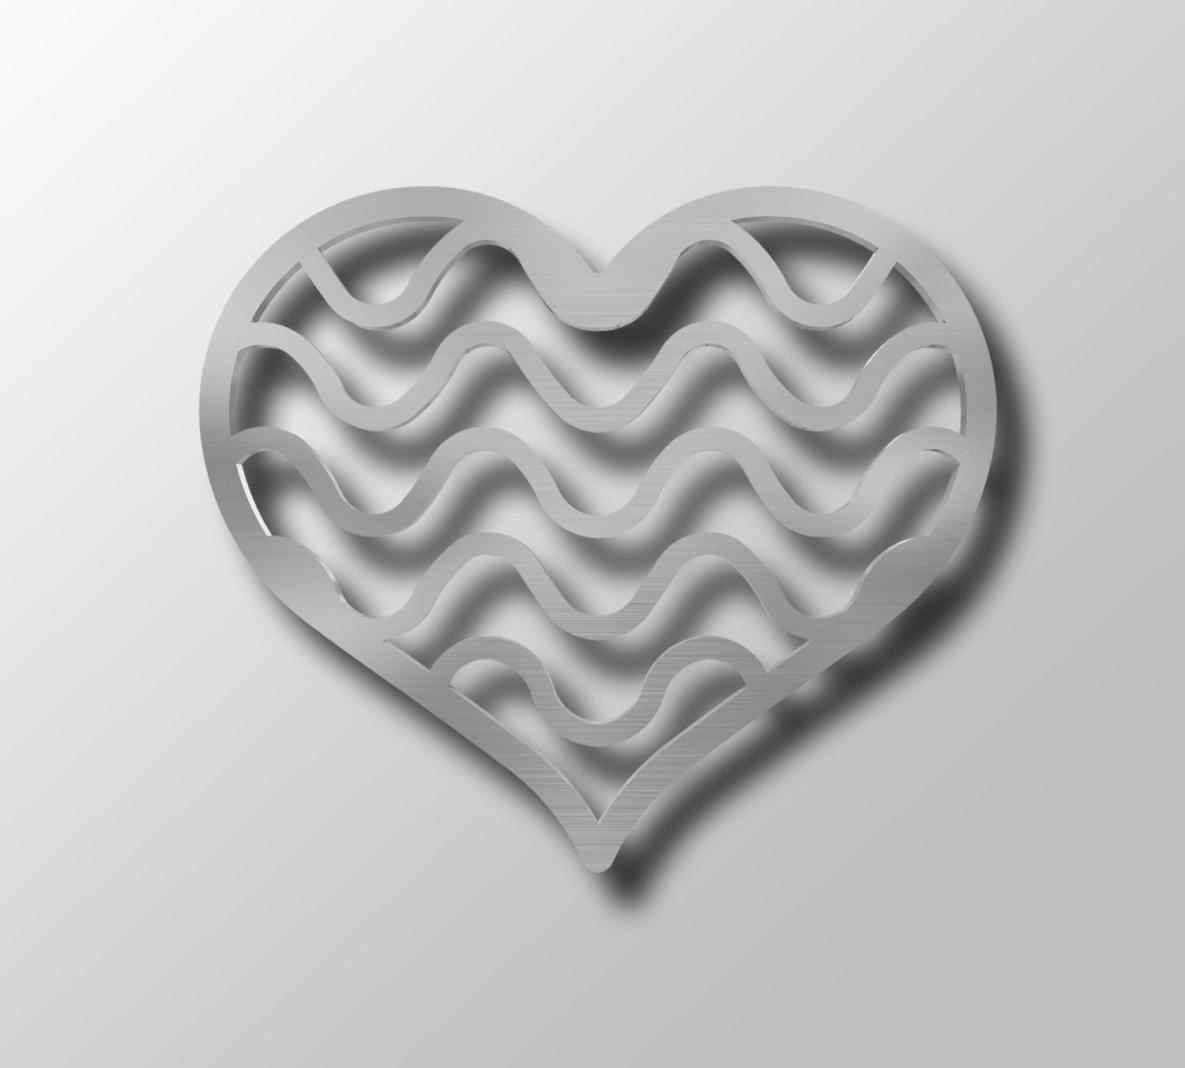 Of My Heart Shaped Metal Wall Art Sculpture Elegant In Ikea Canvas Intended For Most Popular Heart Shaped Metal Wall Art (View 7 of 20)